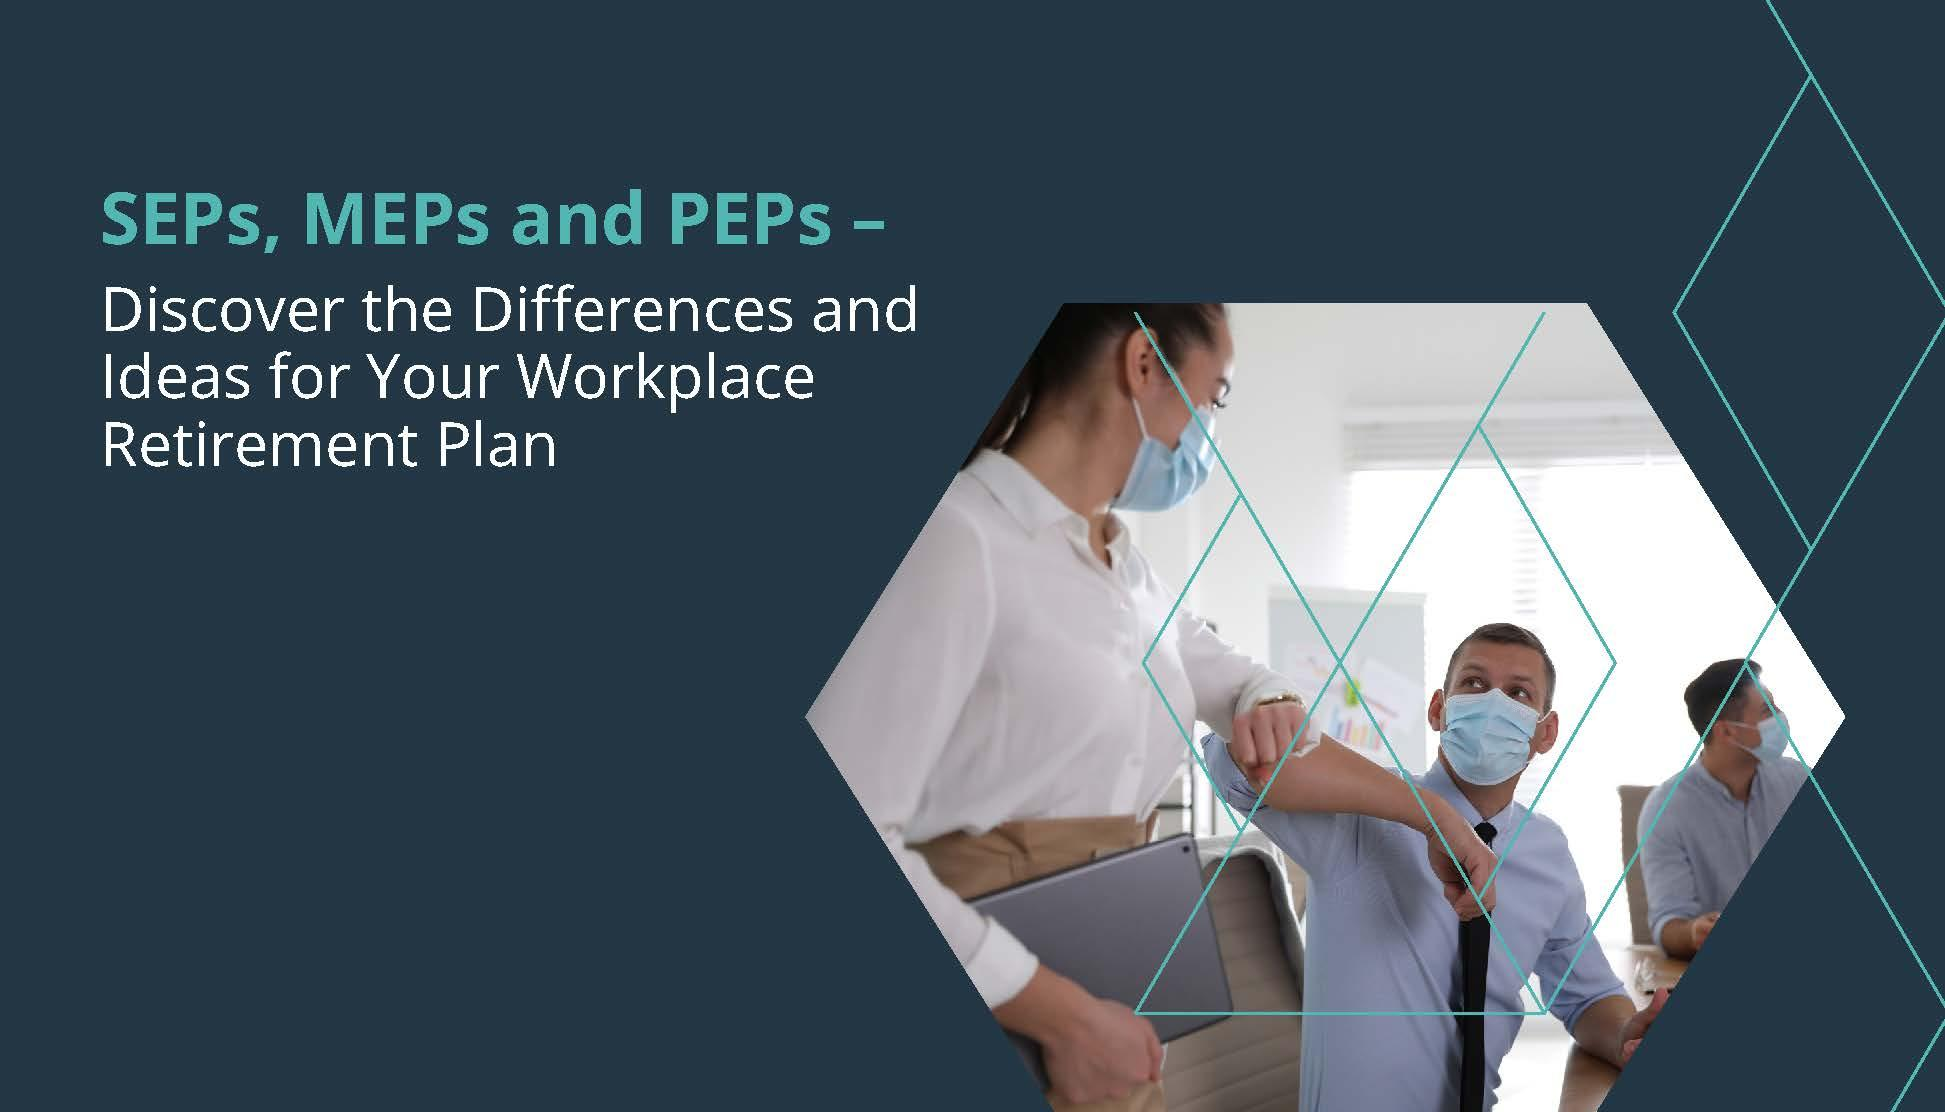 SEPs, MEPs and PEPs — What's the difference? Thumbnail